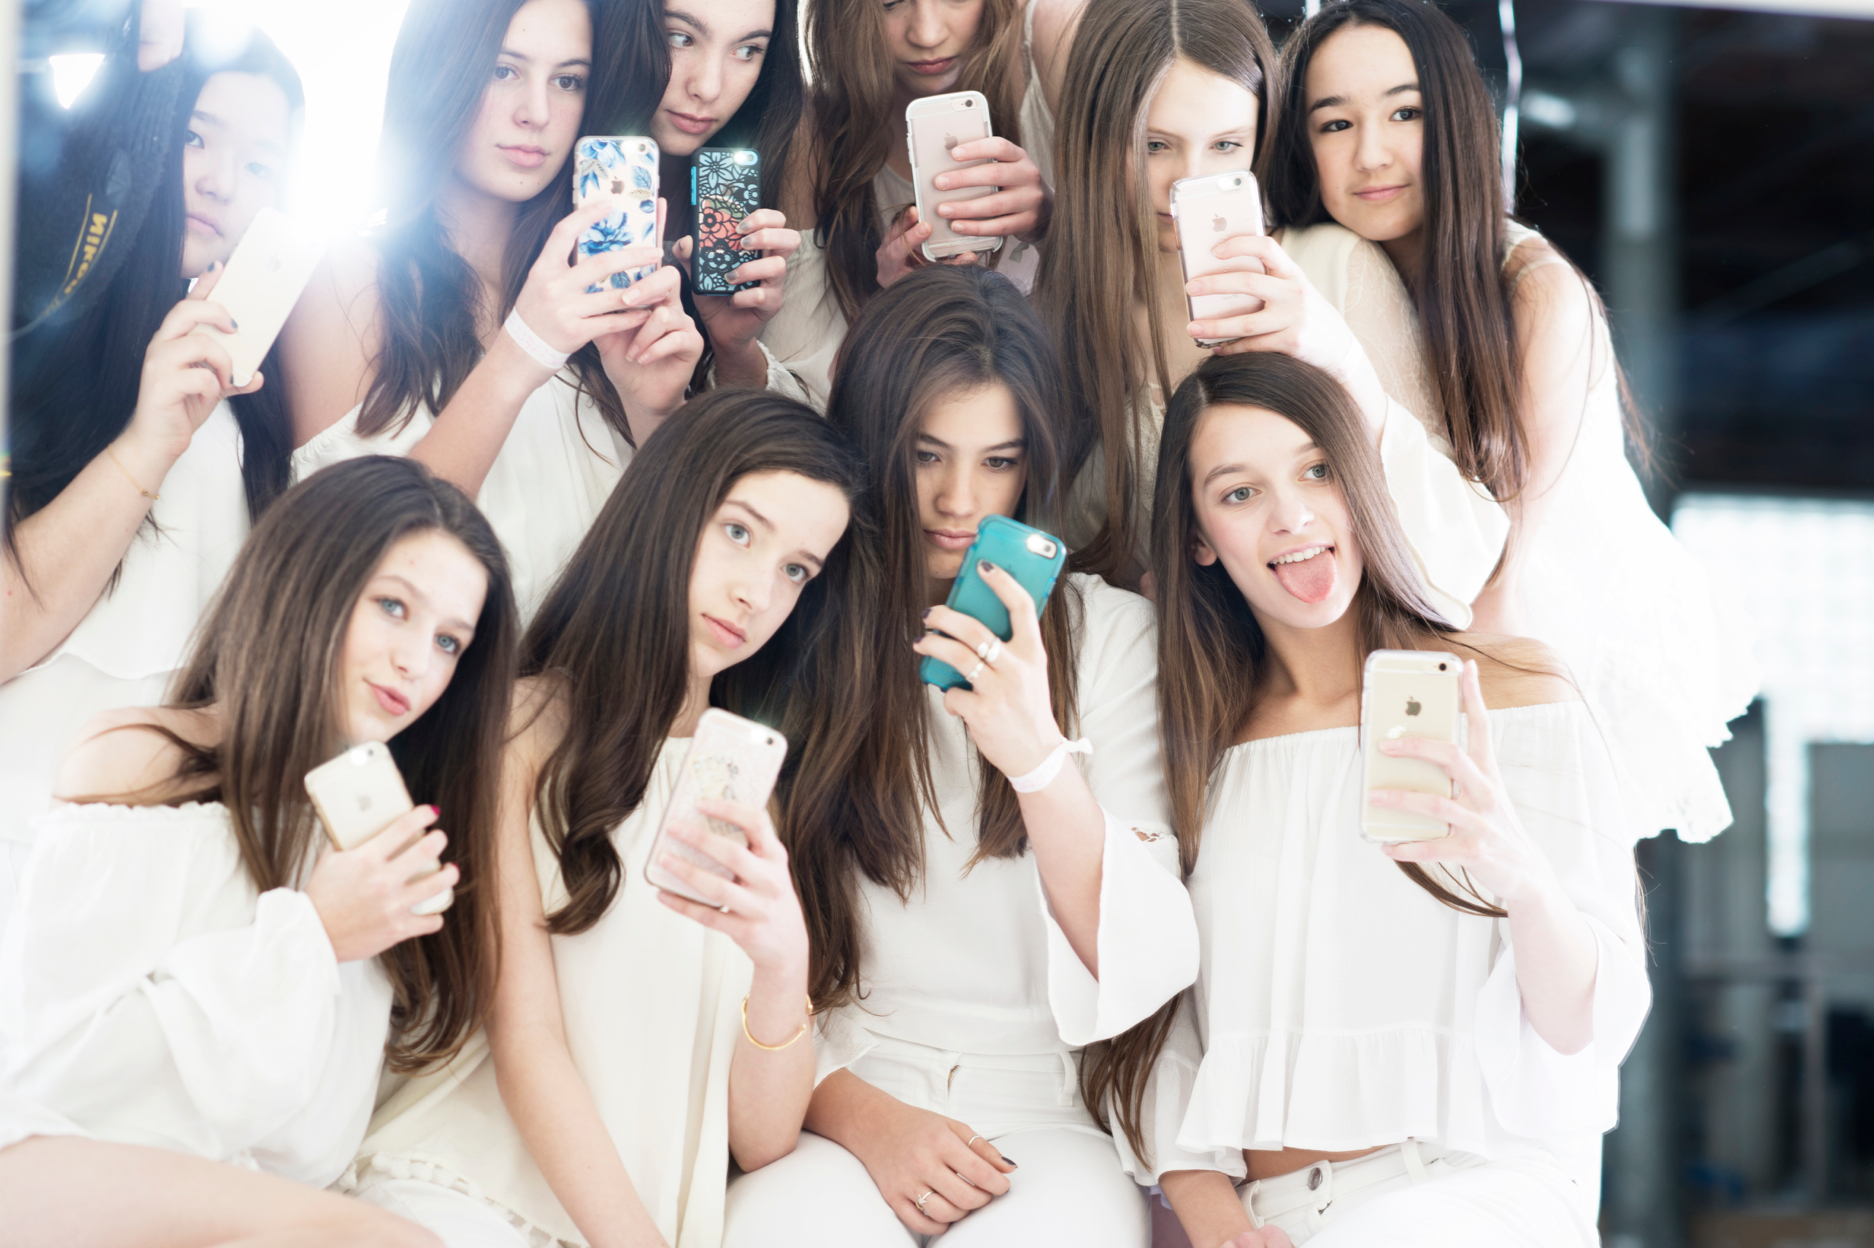 teen girls making selfies wearing white clothes